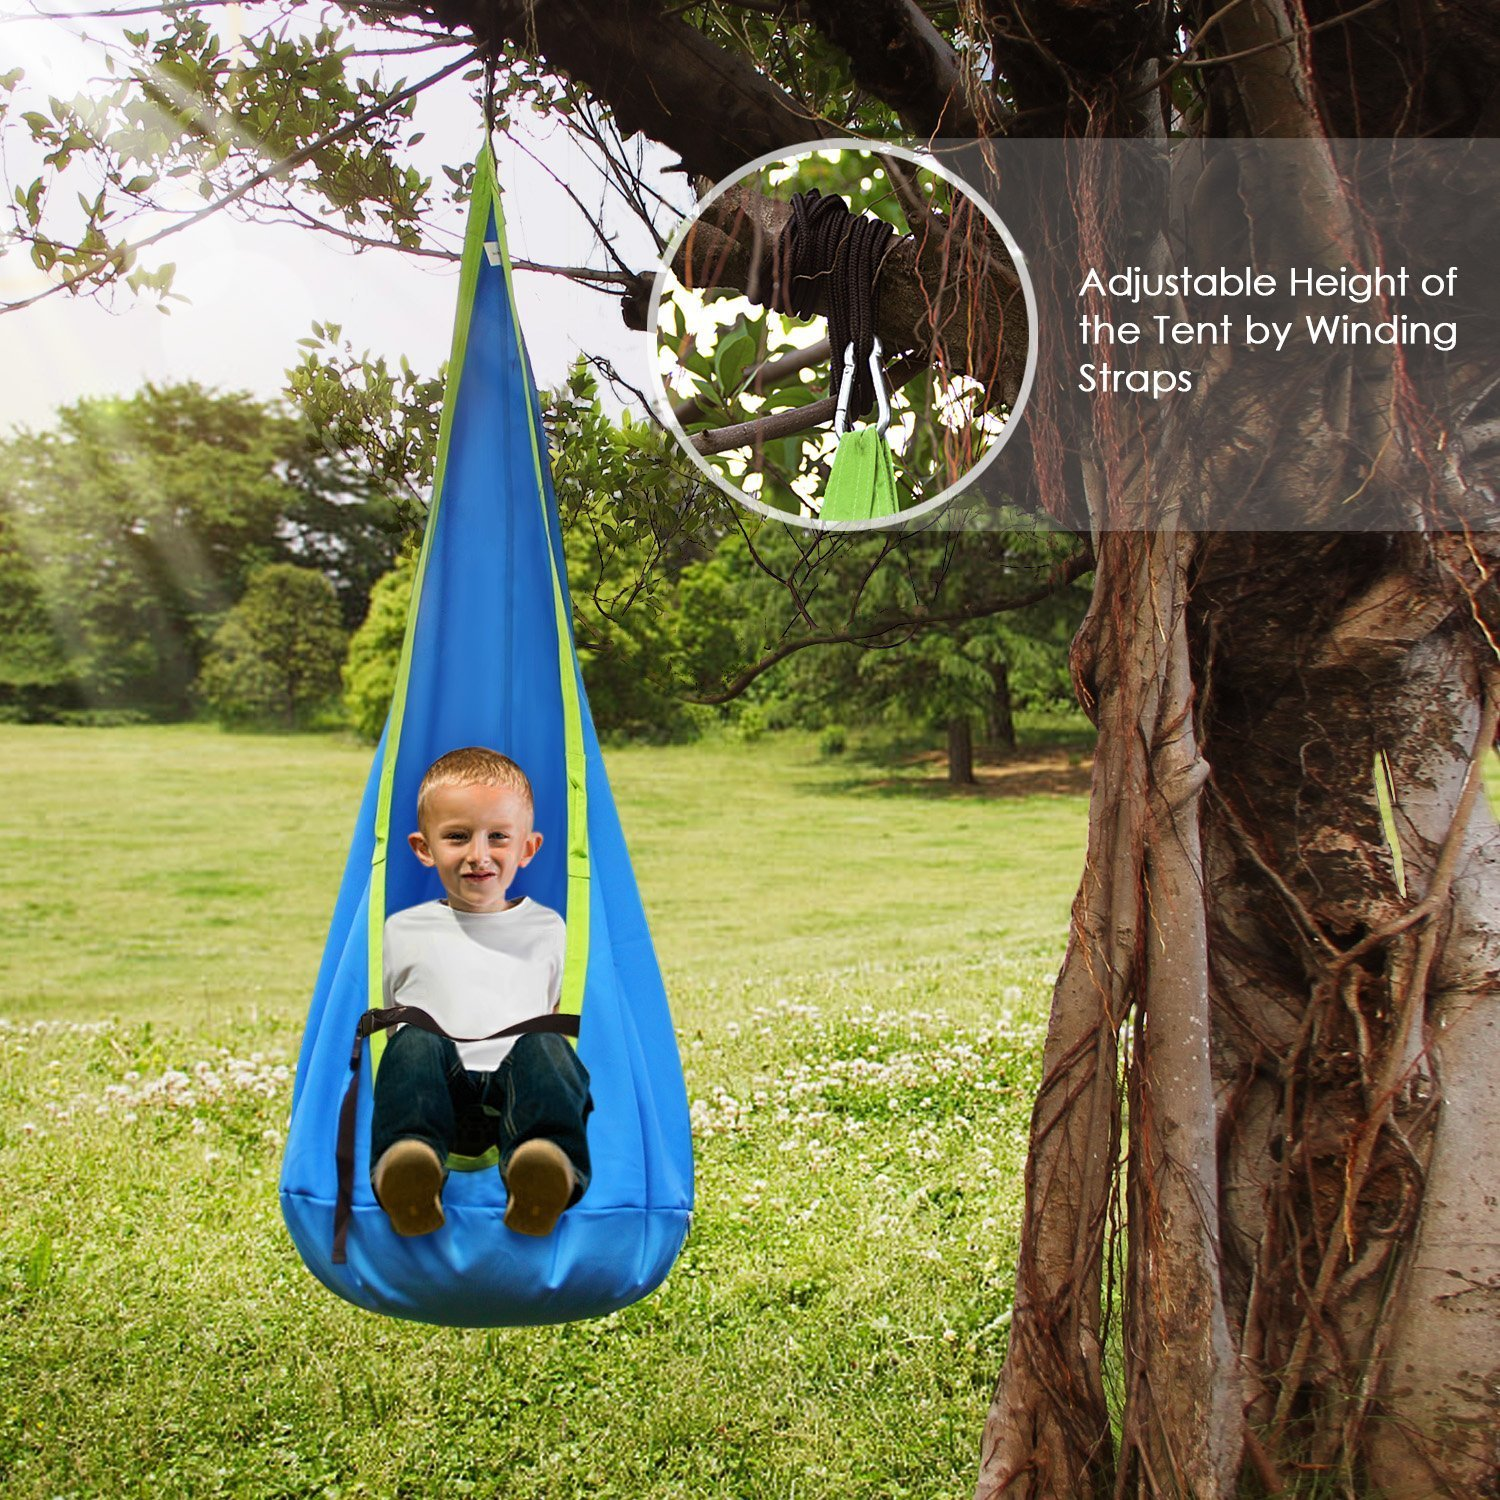 INTEY Hanging Cave Kids Hanging Chair with Hook and Hanging Ropes, Hanging Sack as Cuddly Cave or Gymnastics Unit for Kids, Blue/Green by INTEY-US (Image #5)